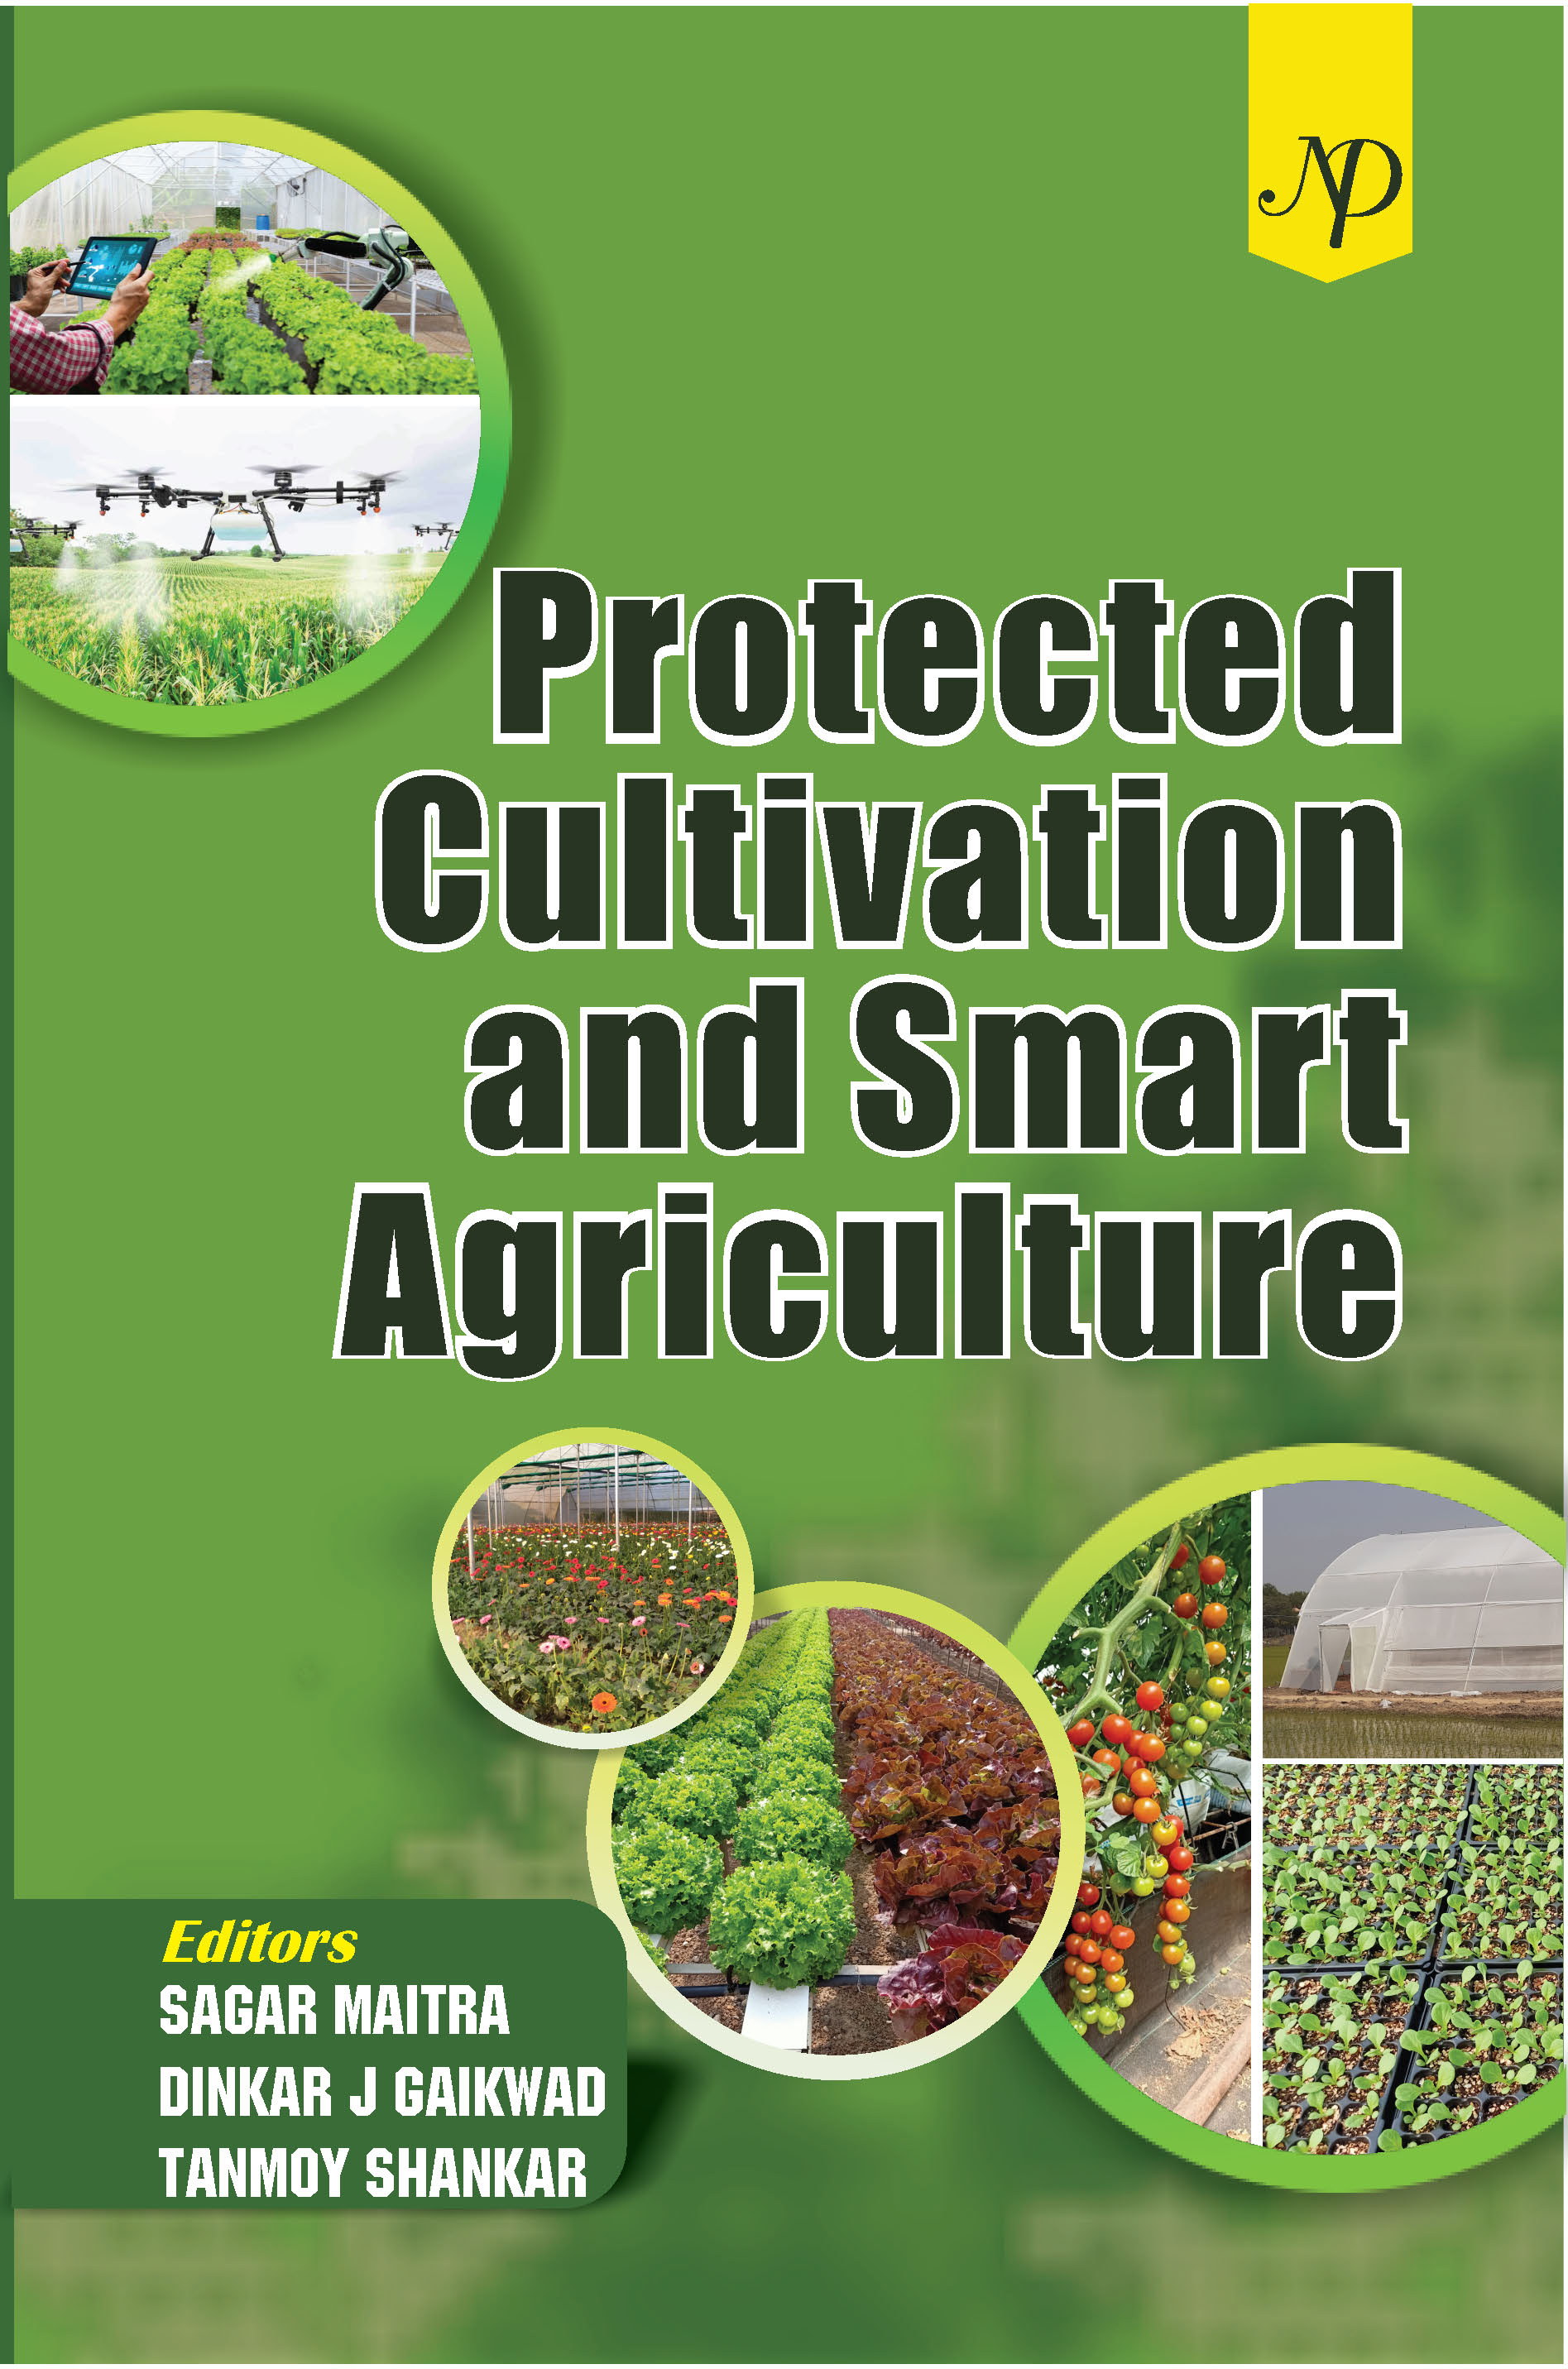 Protected Cultivation and Smart Agriculture